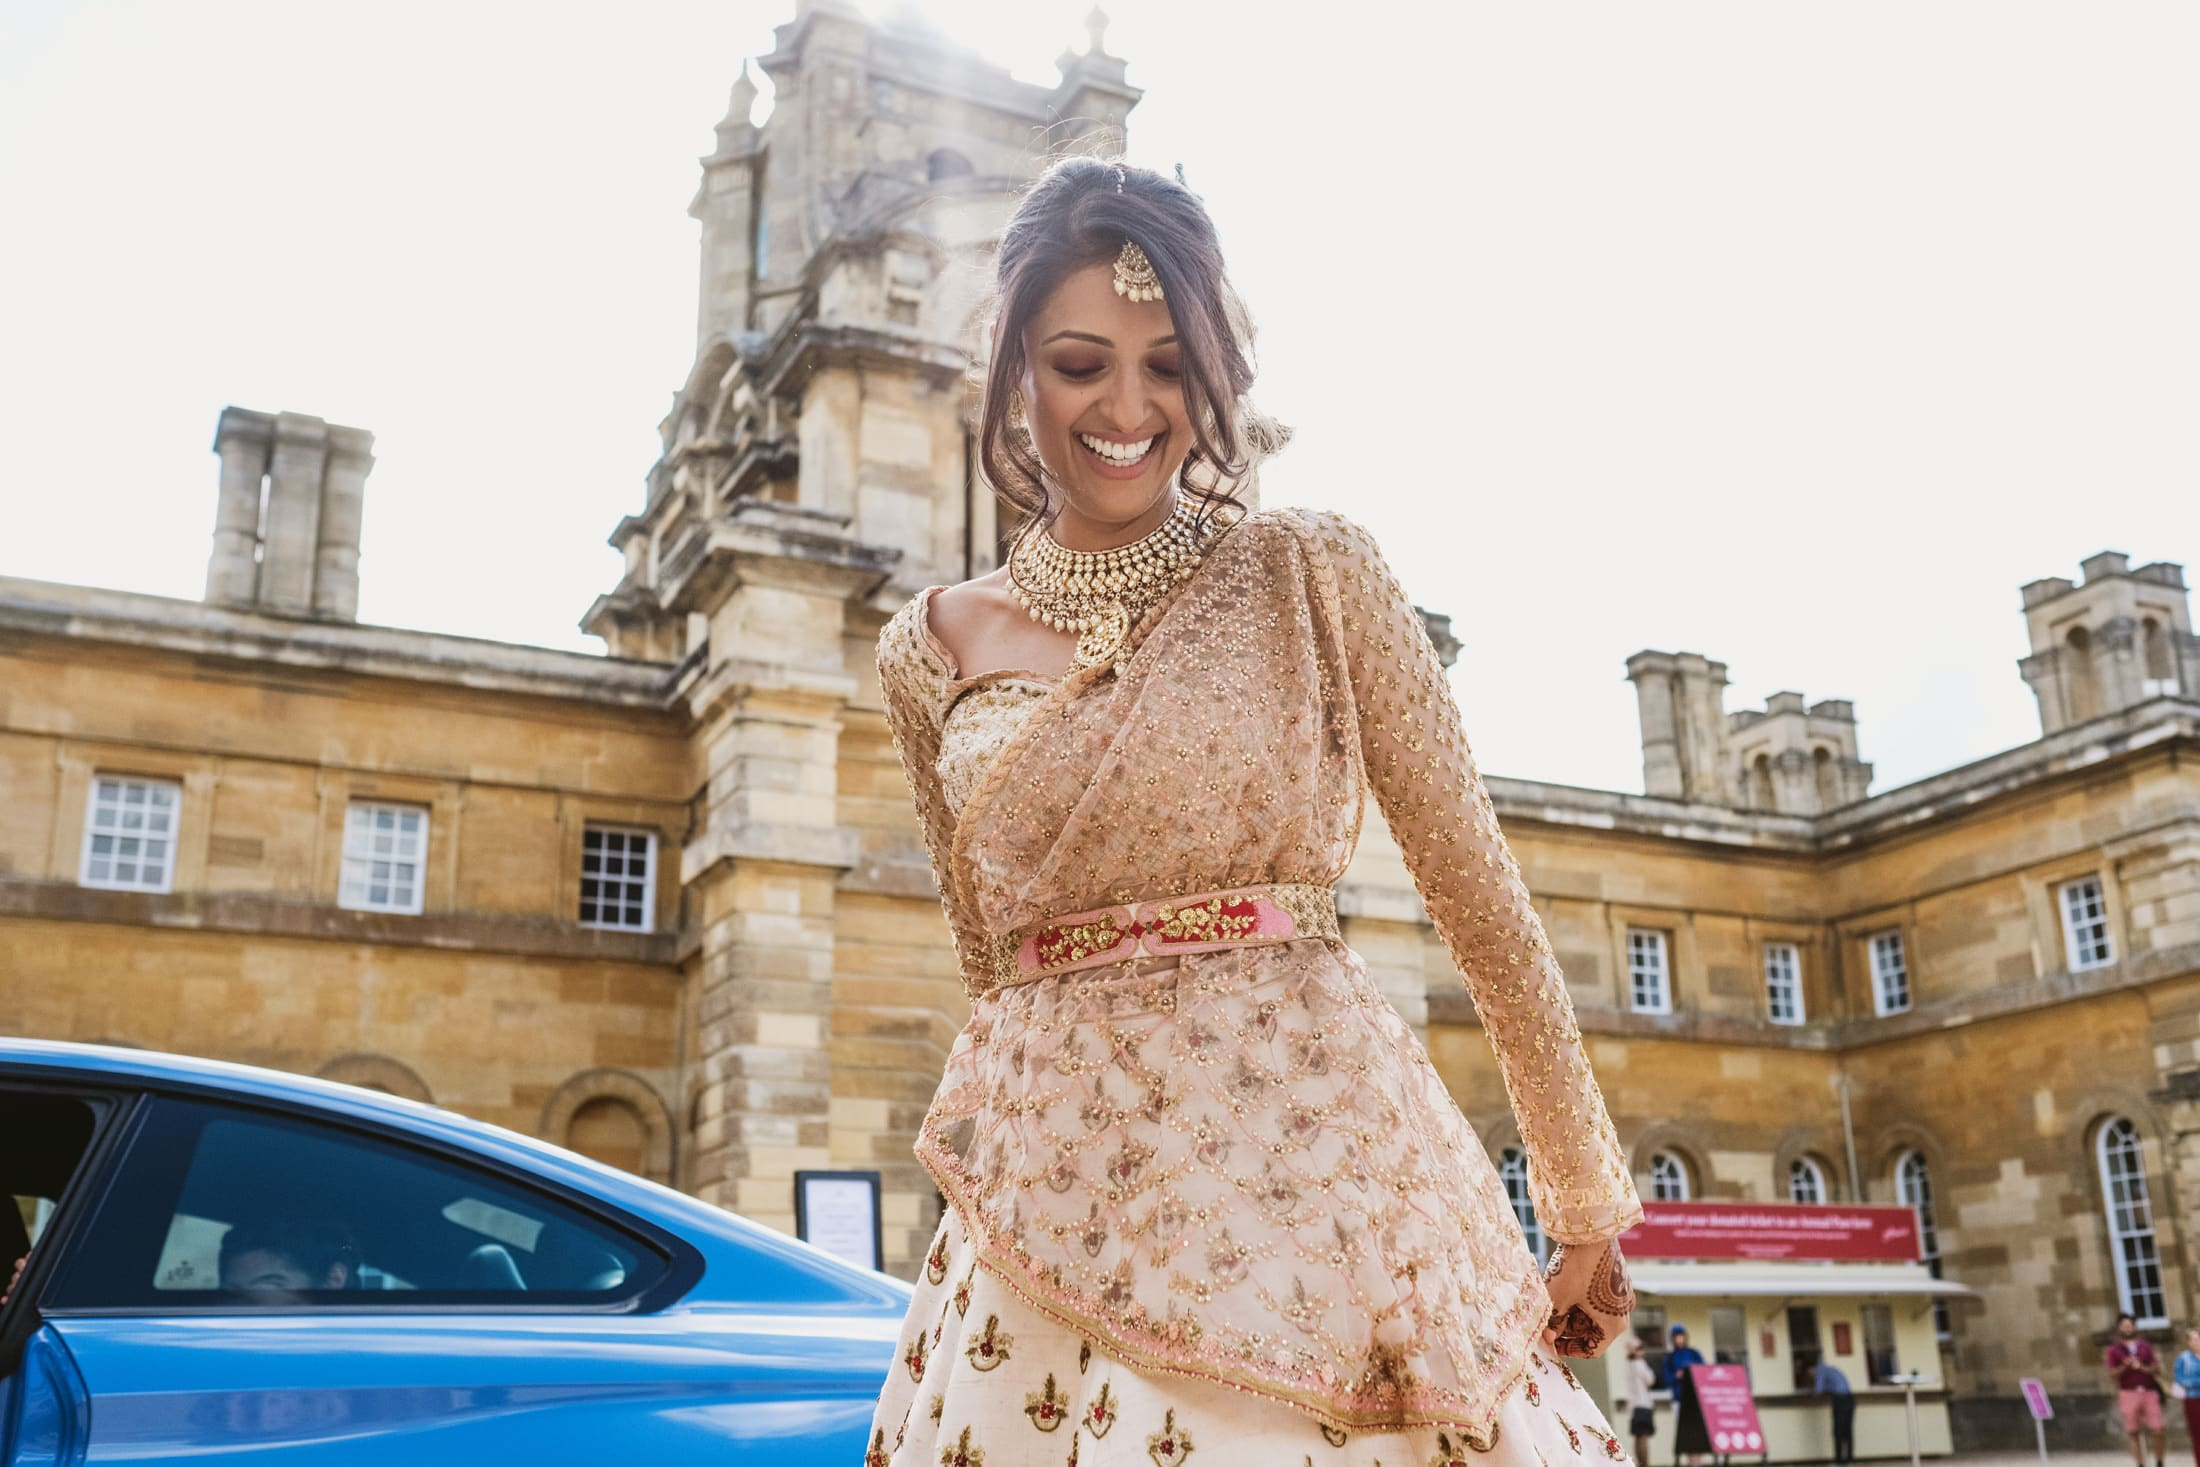 Bride arrived at Blenheim Palace